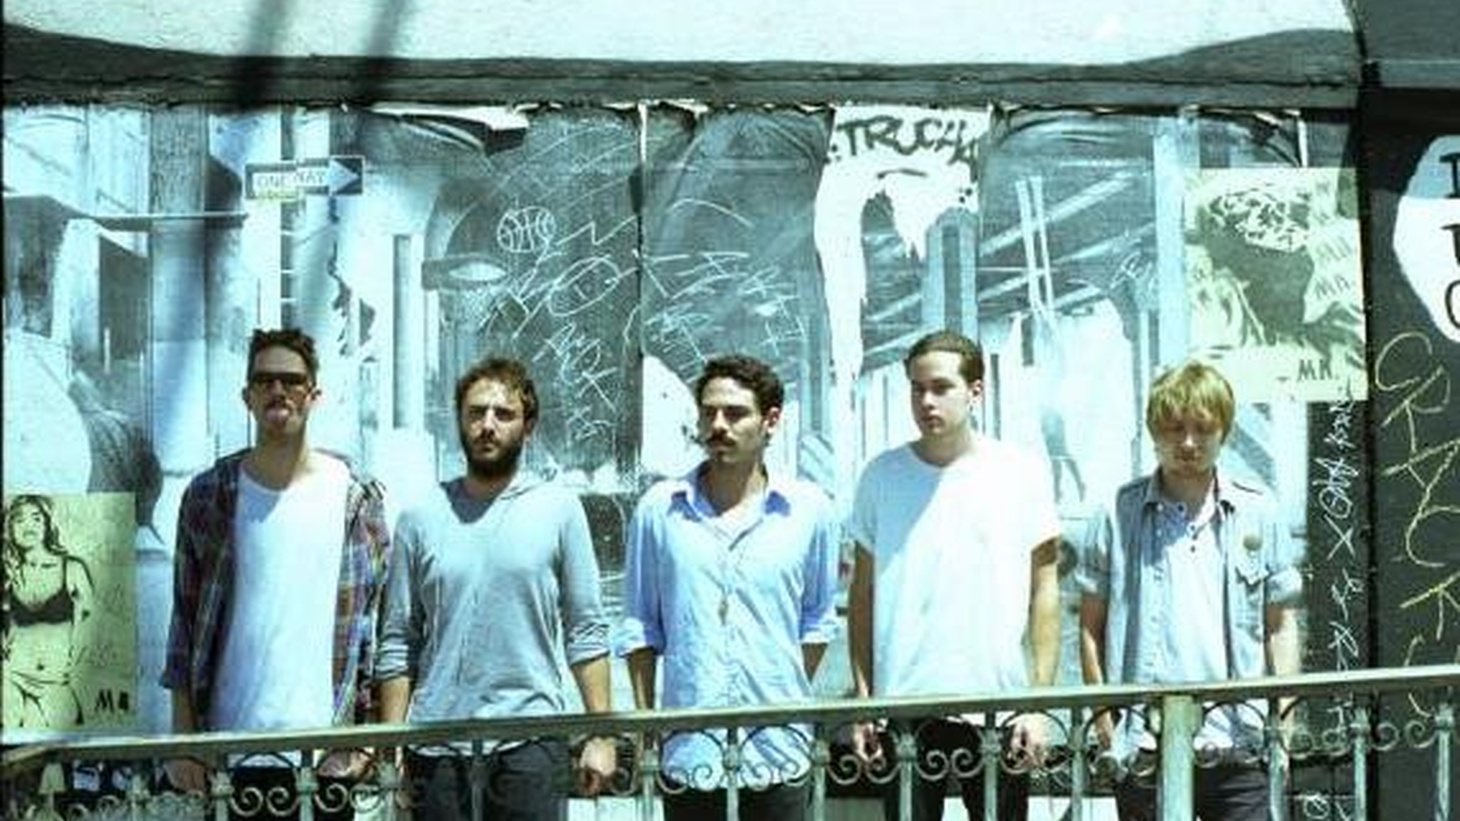 Local Natives broke out big in 2010, touring the world nonstop and garnering international acclaim for their debut, Gorilla Maner. We'll catch up with the LA band on Morning Becomes Eclectic at 11:15am as they get ready to make their debut at Disney Hall.